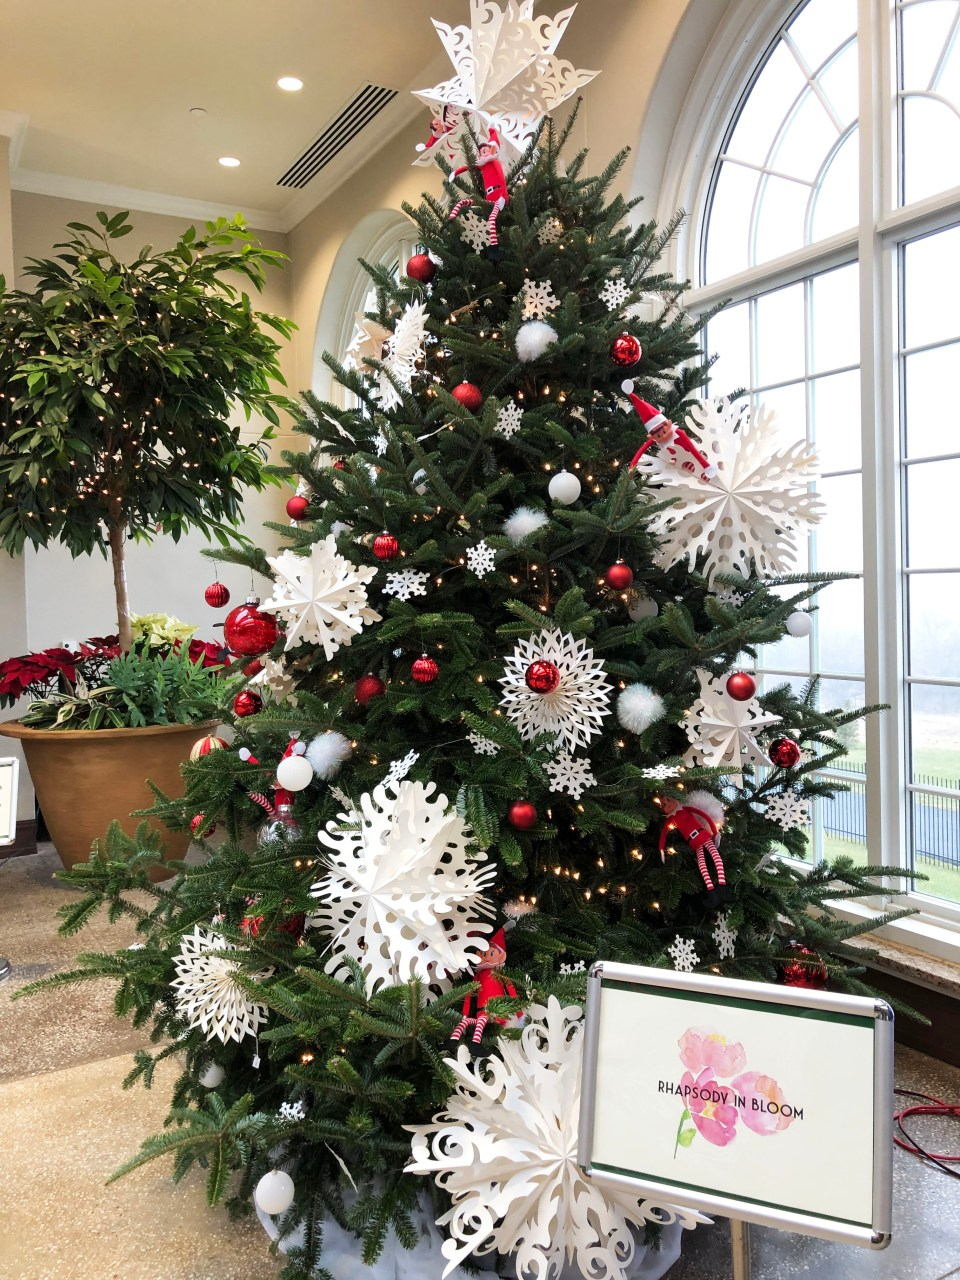 Hershey Gardens - Christmas Tree Showcase 5